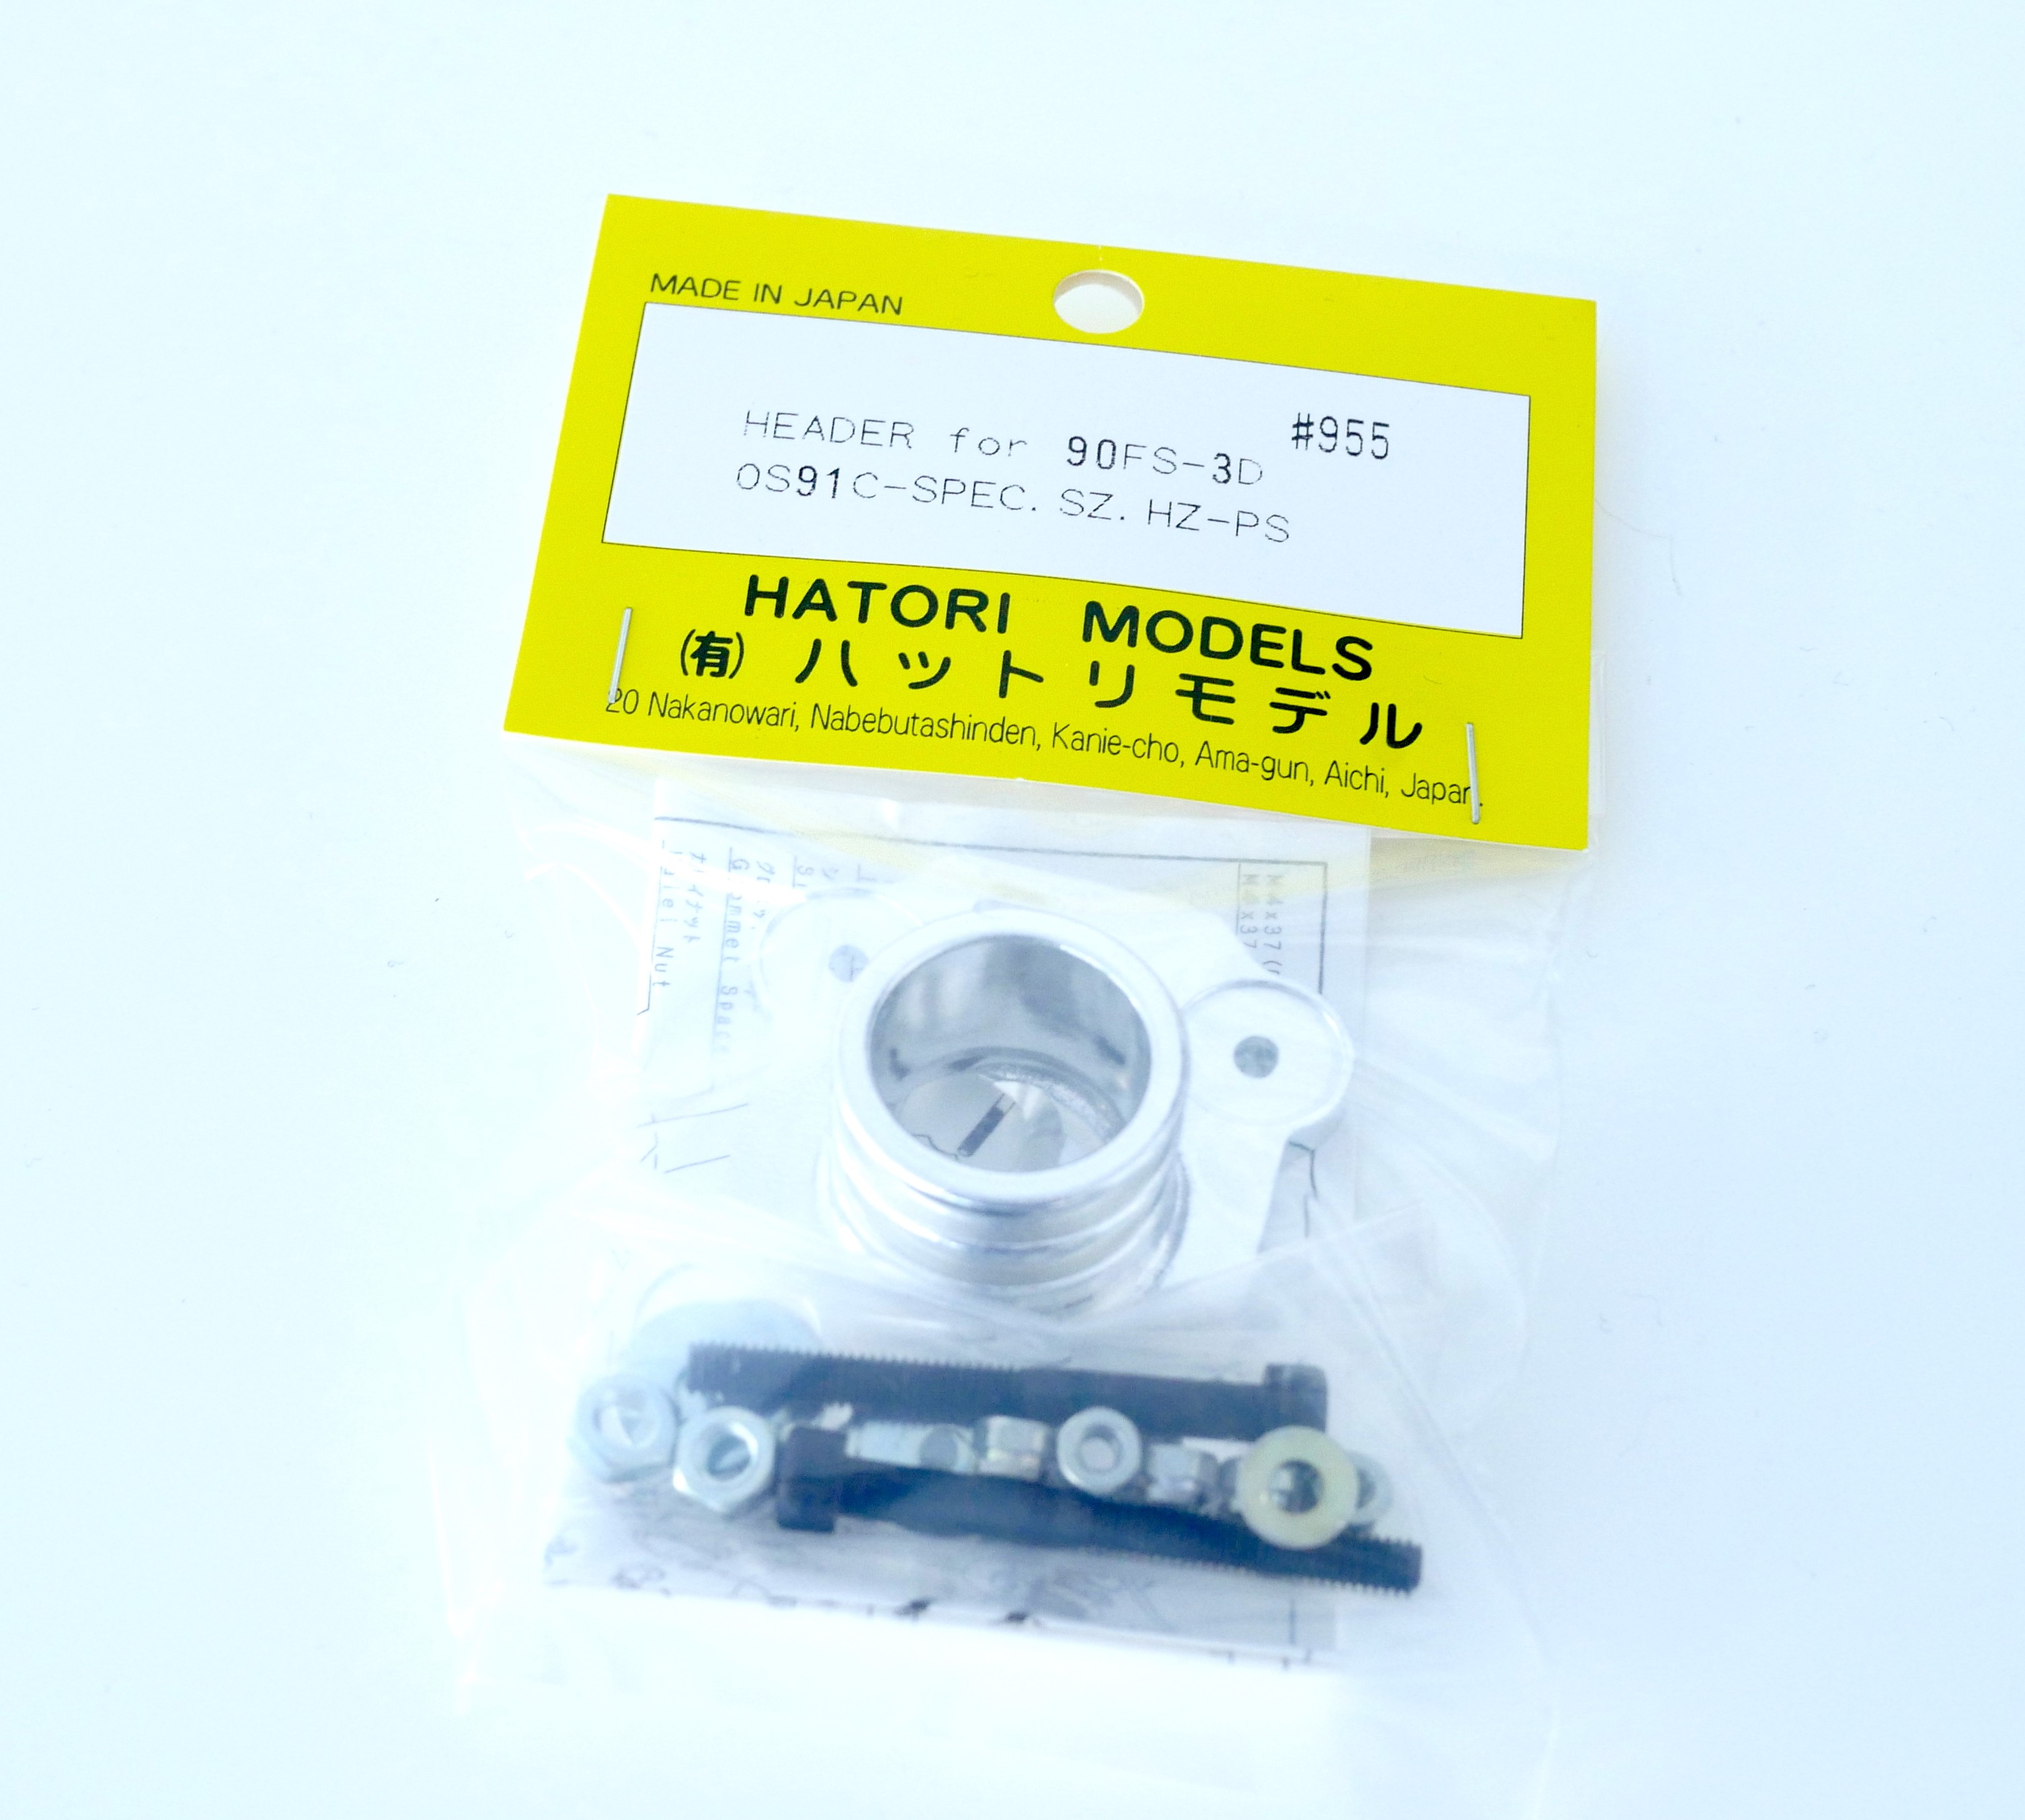 HATORI 955 HEADER for 90FS-3D for OS91C SPEC SZ HZ